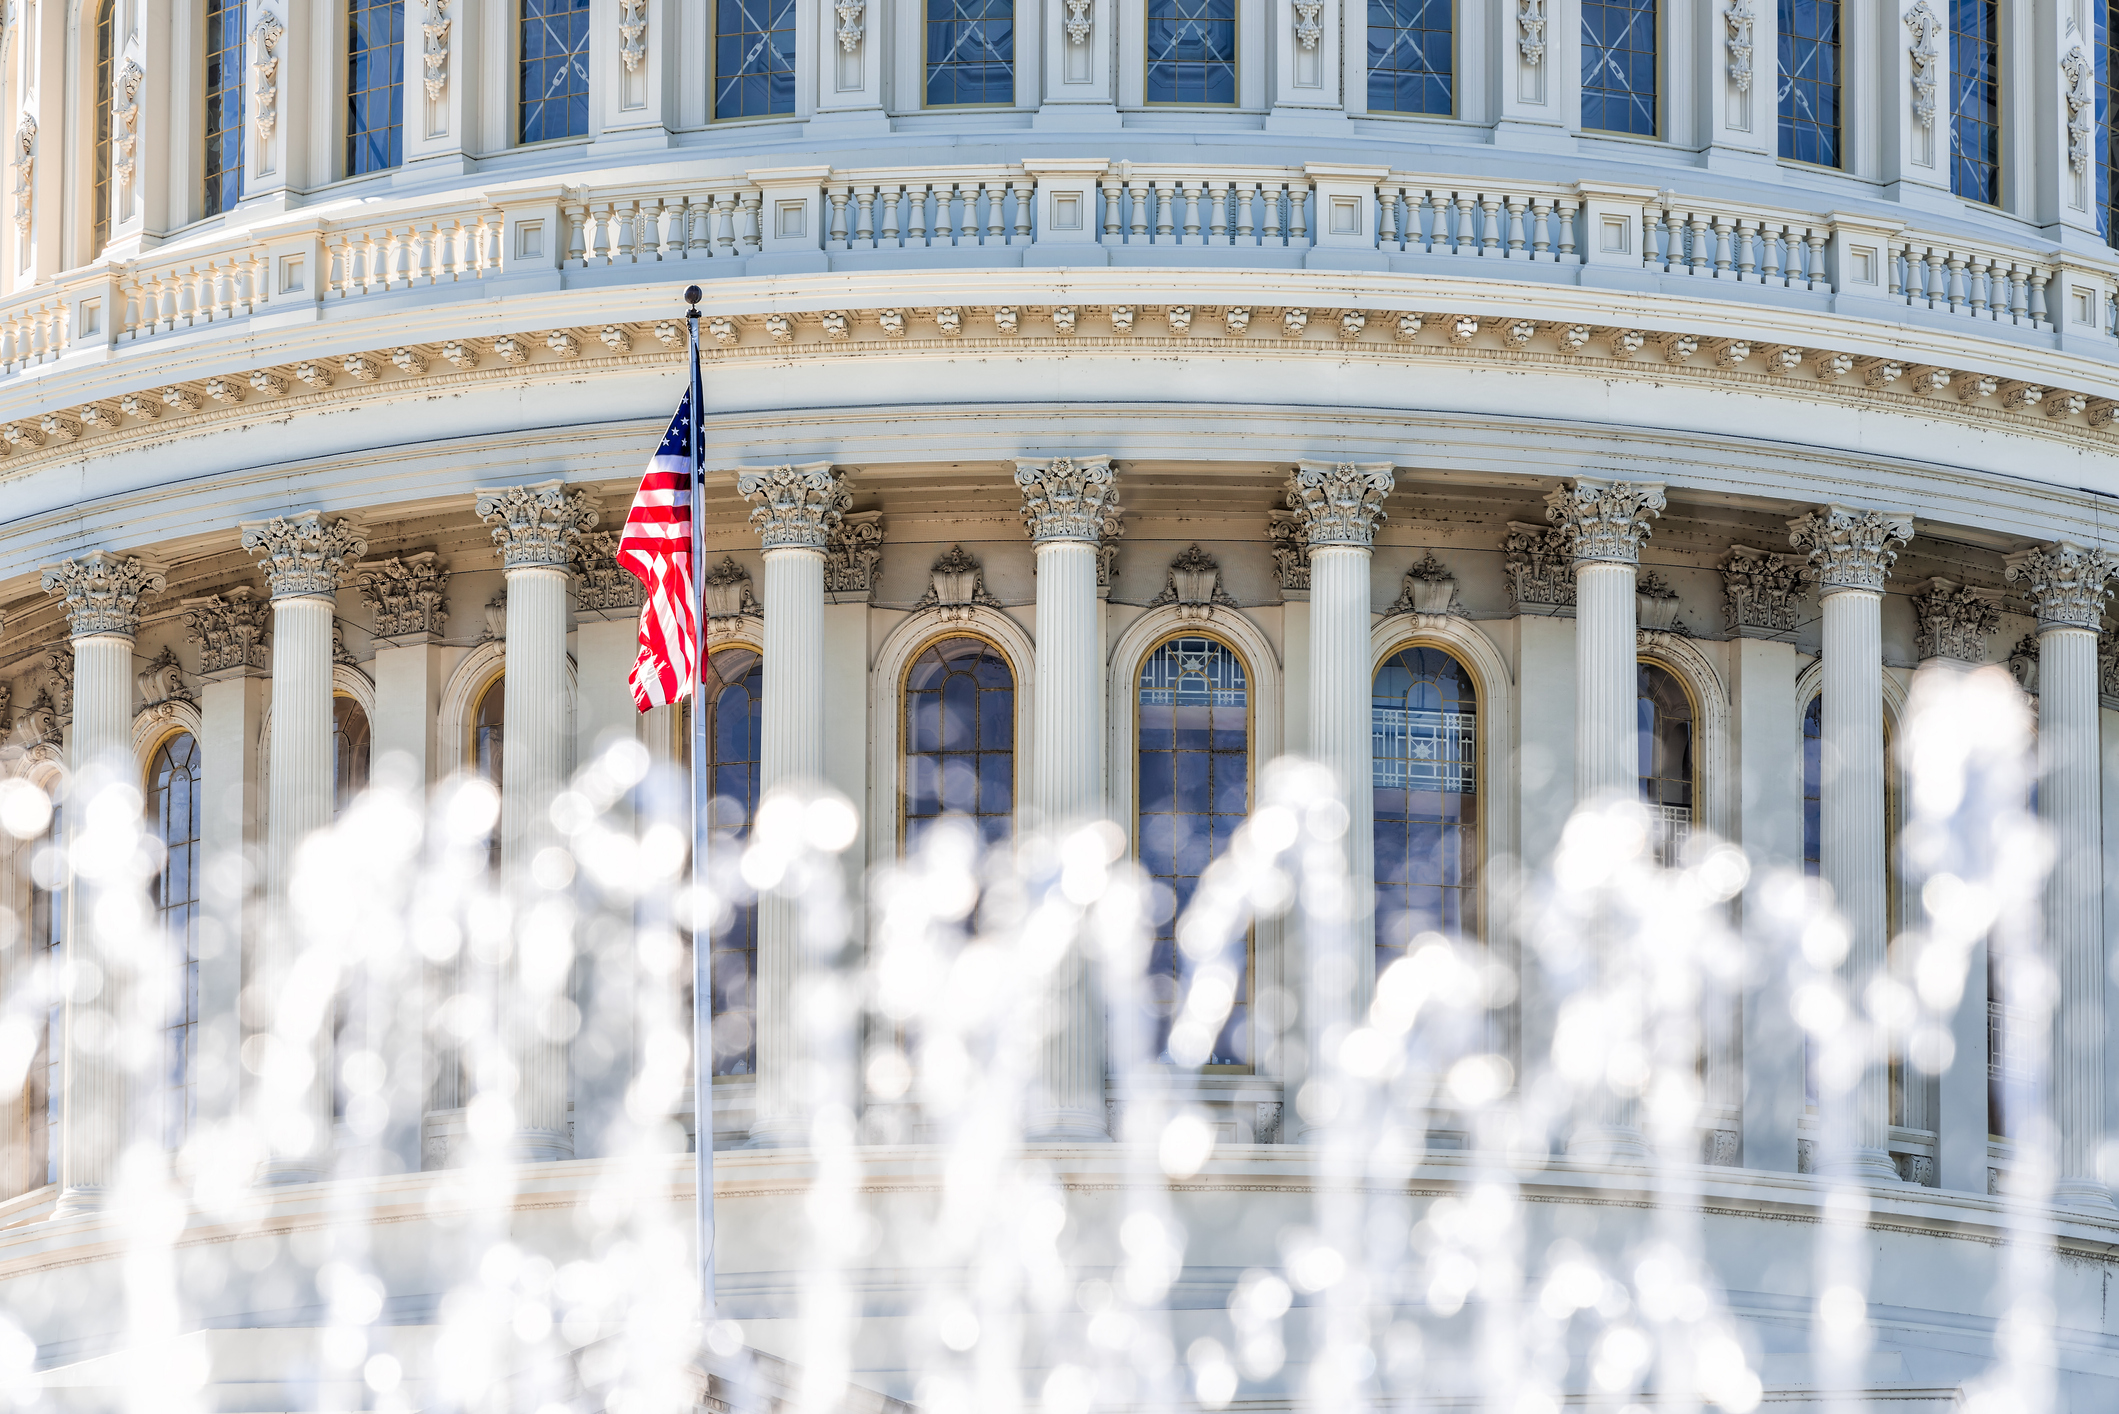 US Congress closeup with background of water fountain splashing